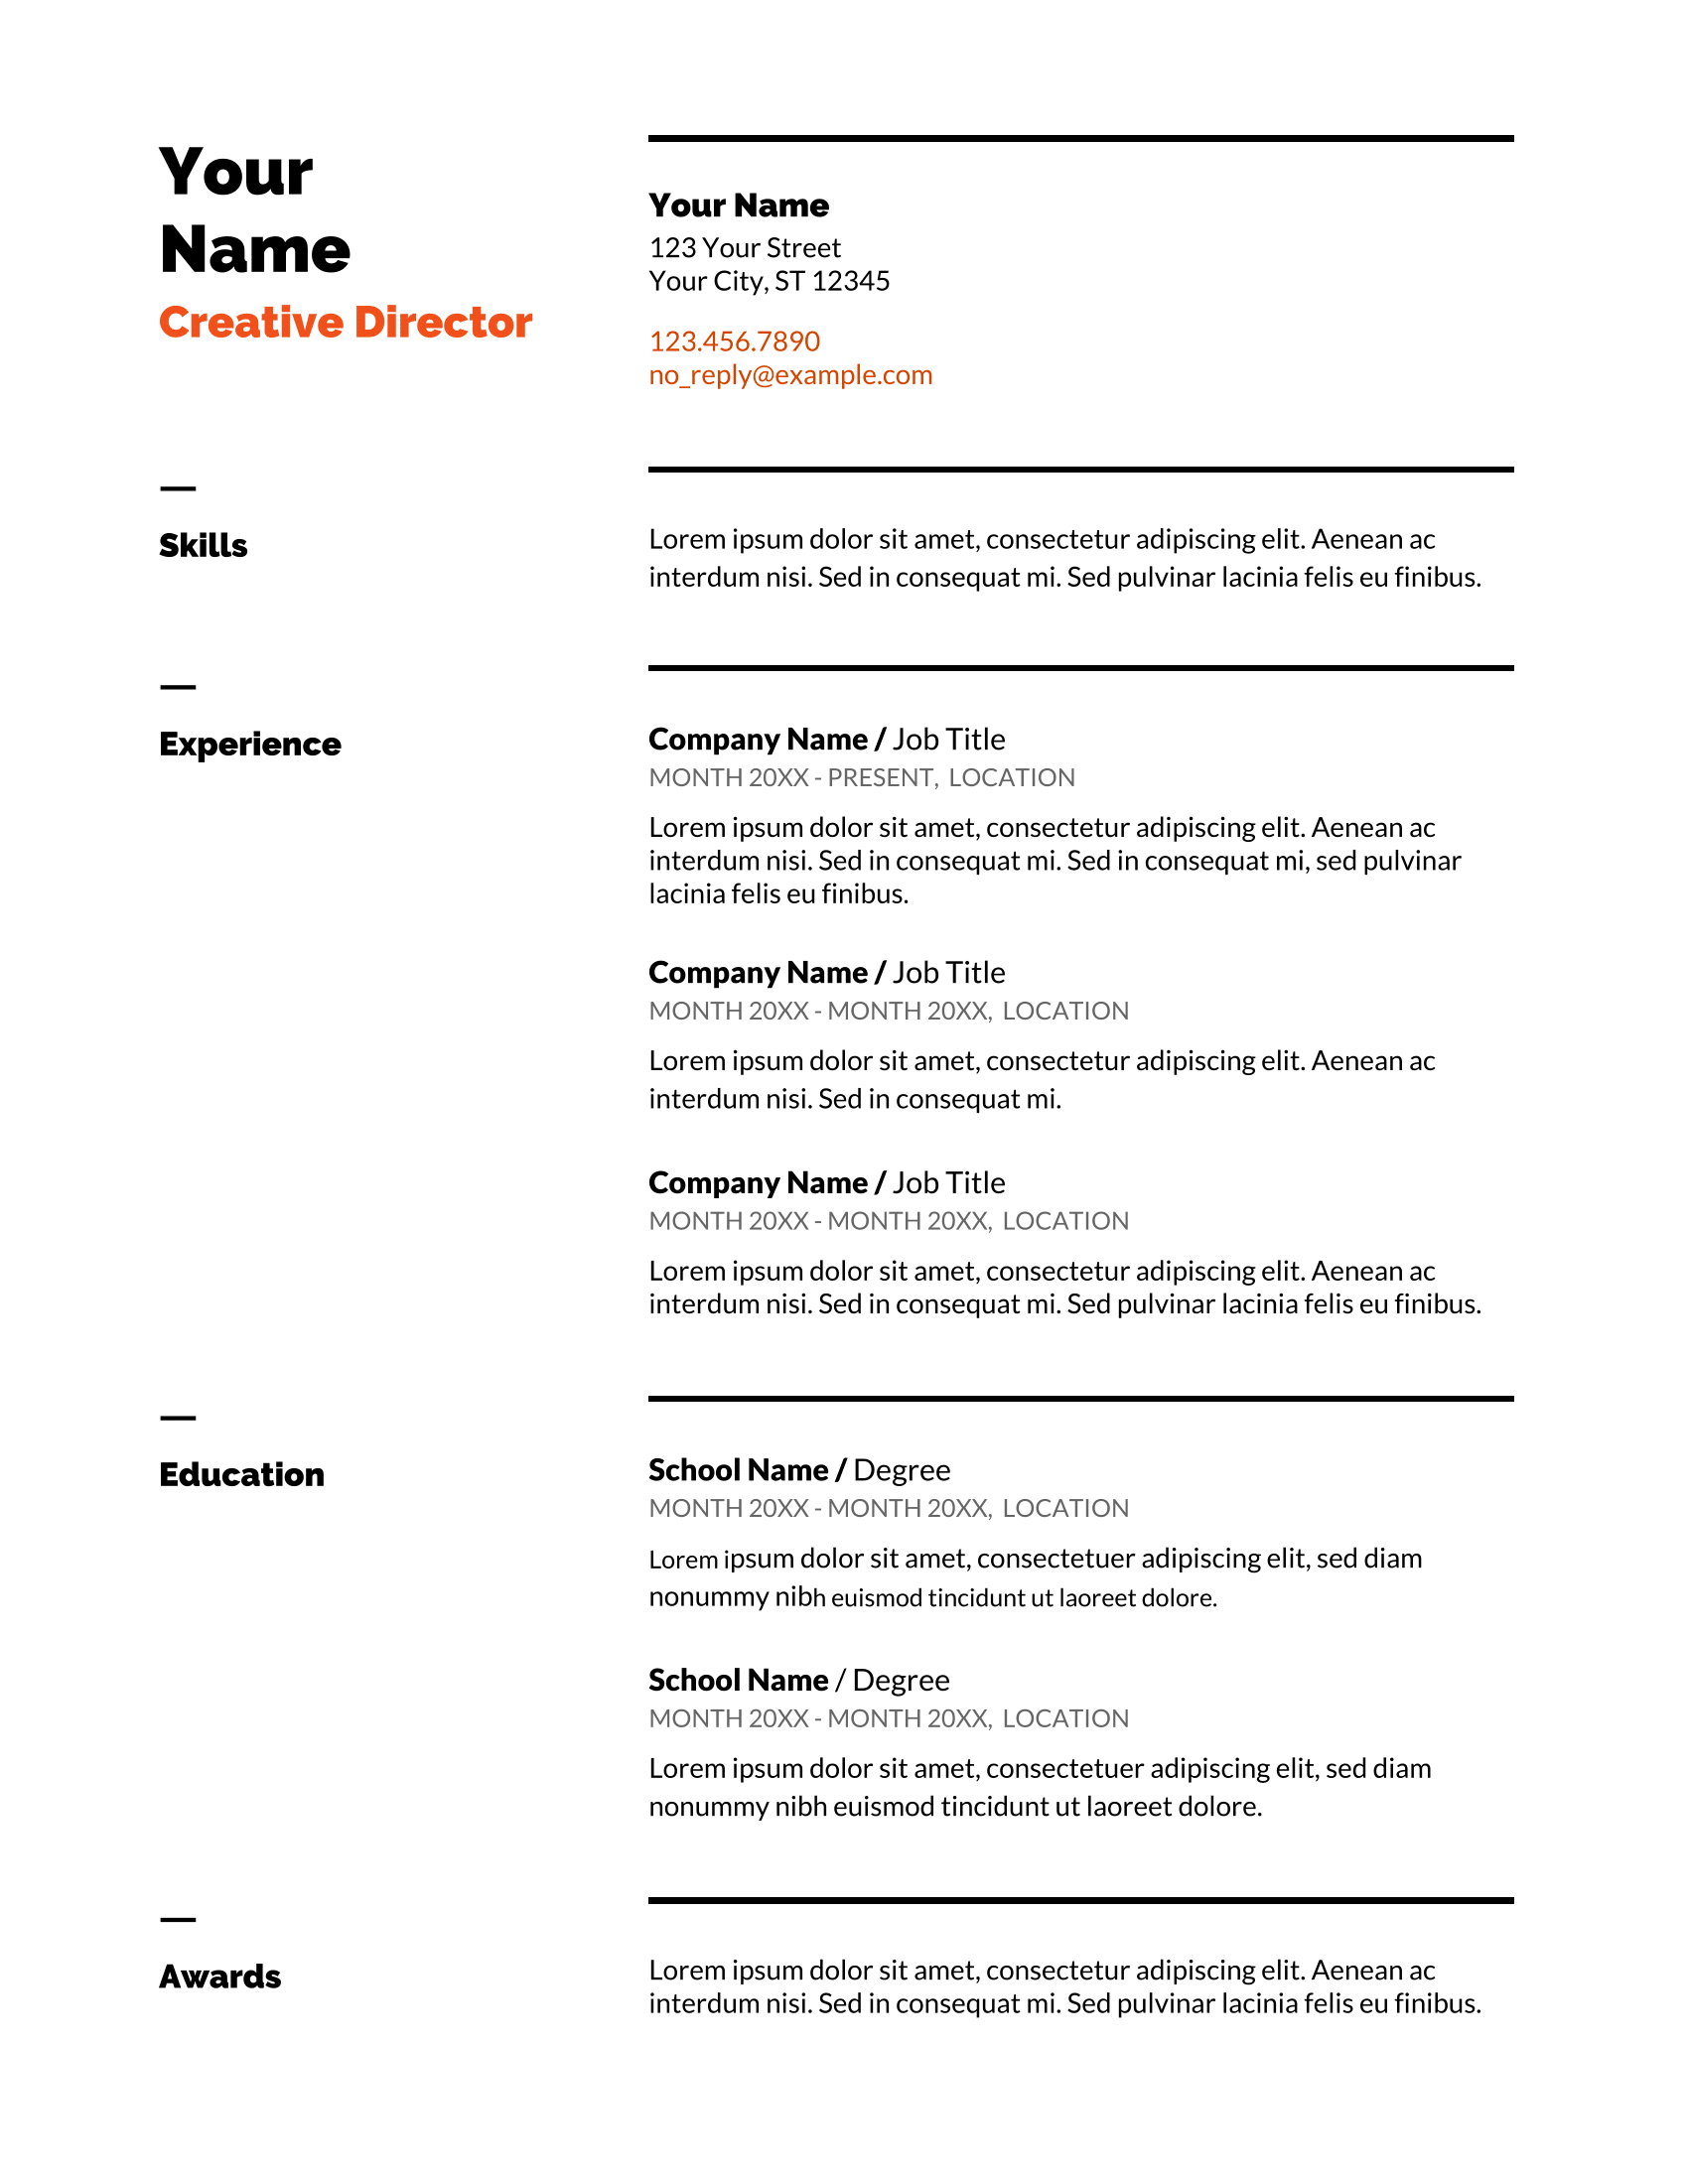 2019 list of top 5 google docs resume templates